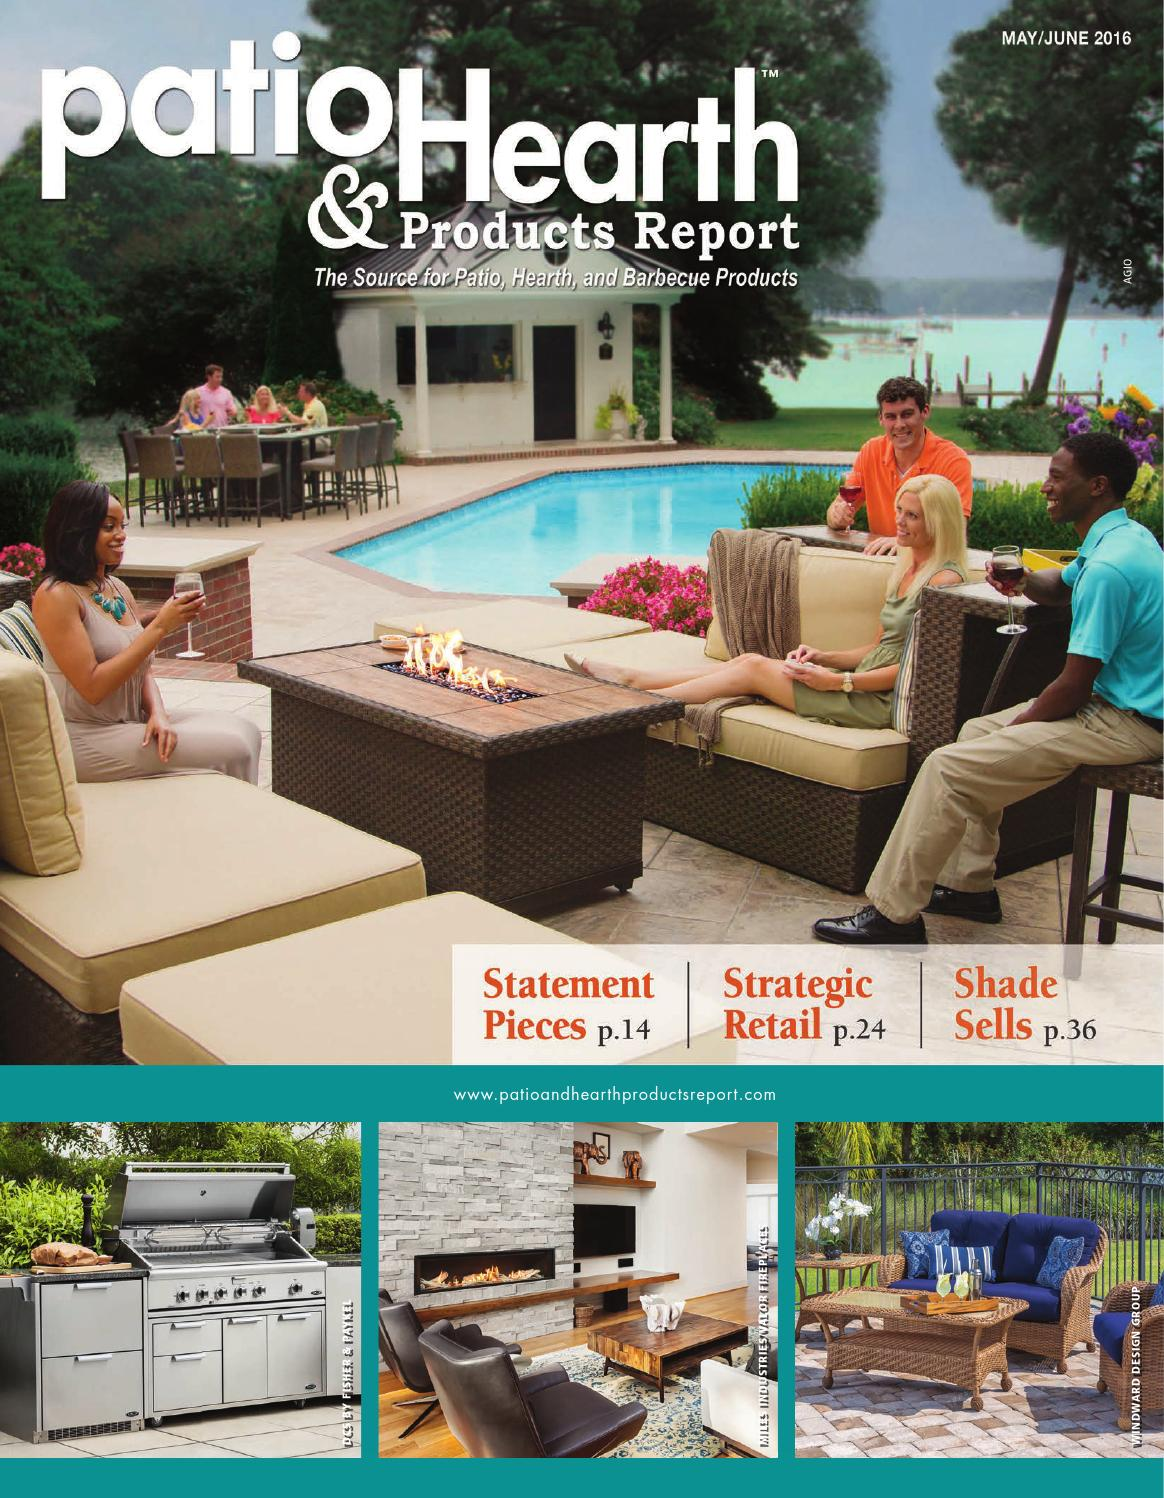 Patio Hearth Product Report May June 2016 By Peninsula Media Issuu